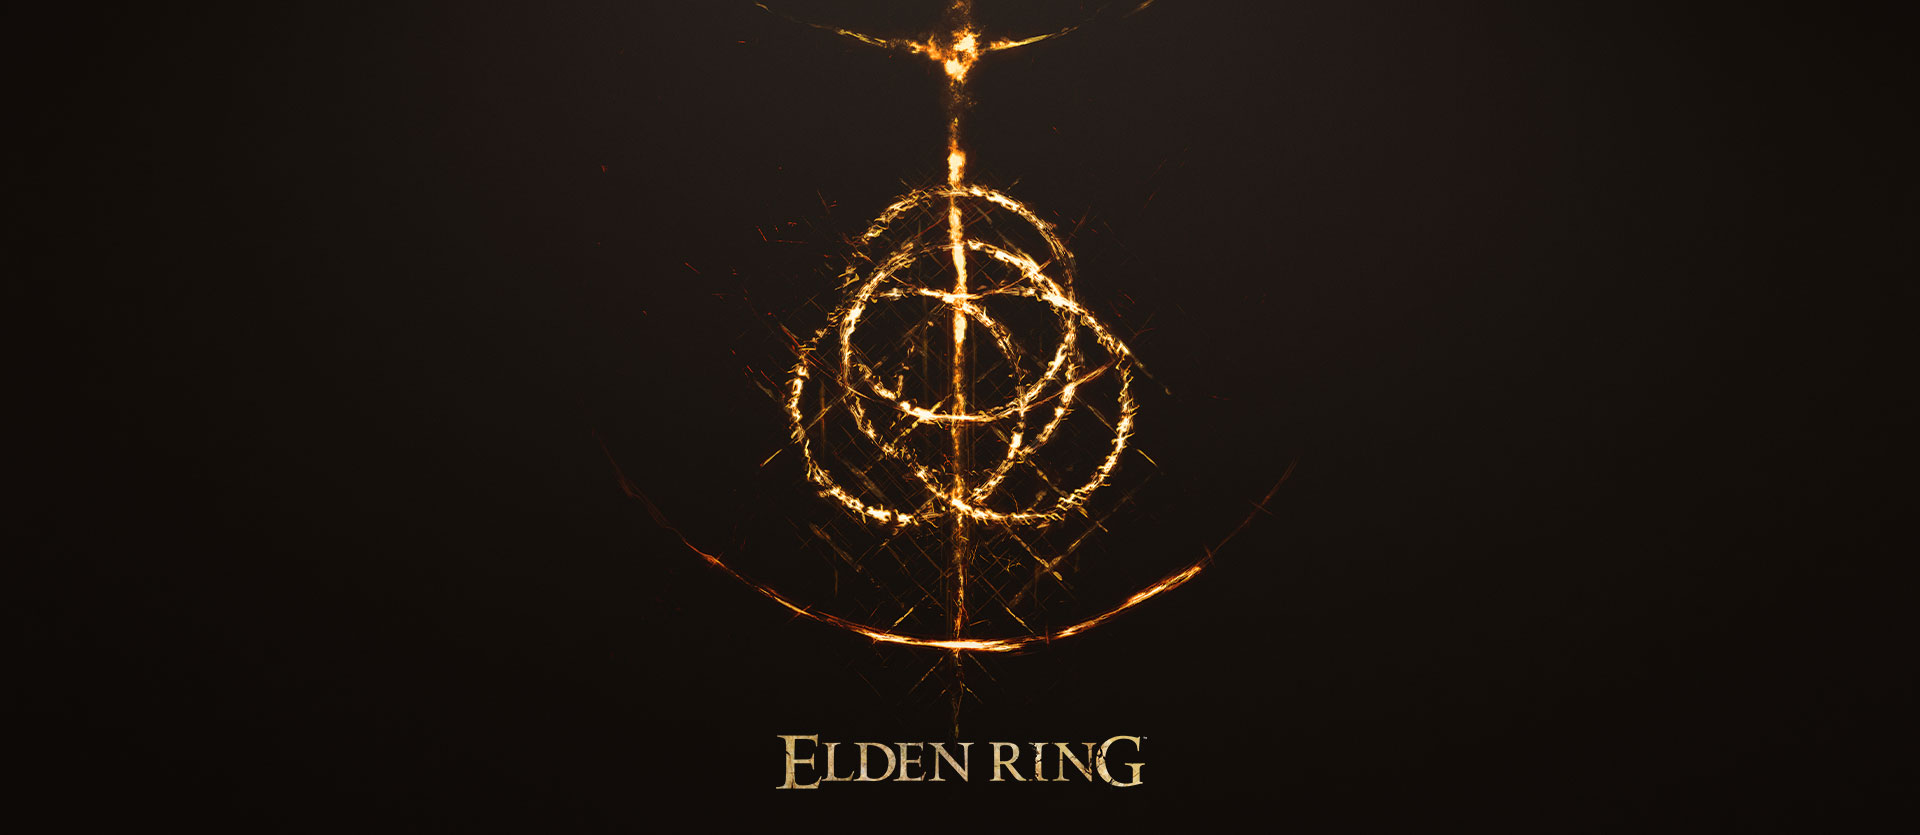 Logótipo do Elden Ring